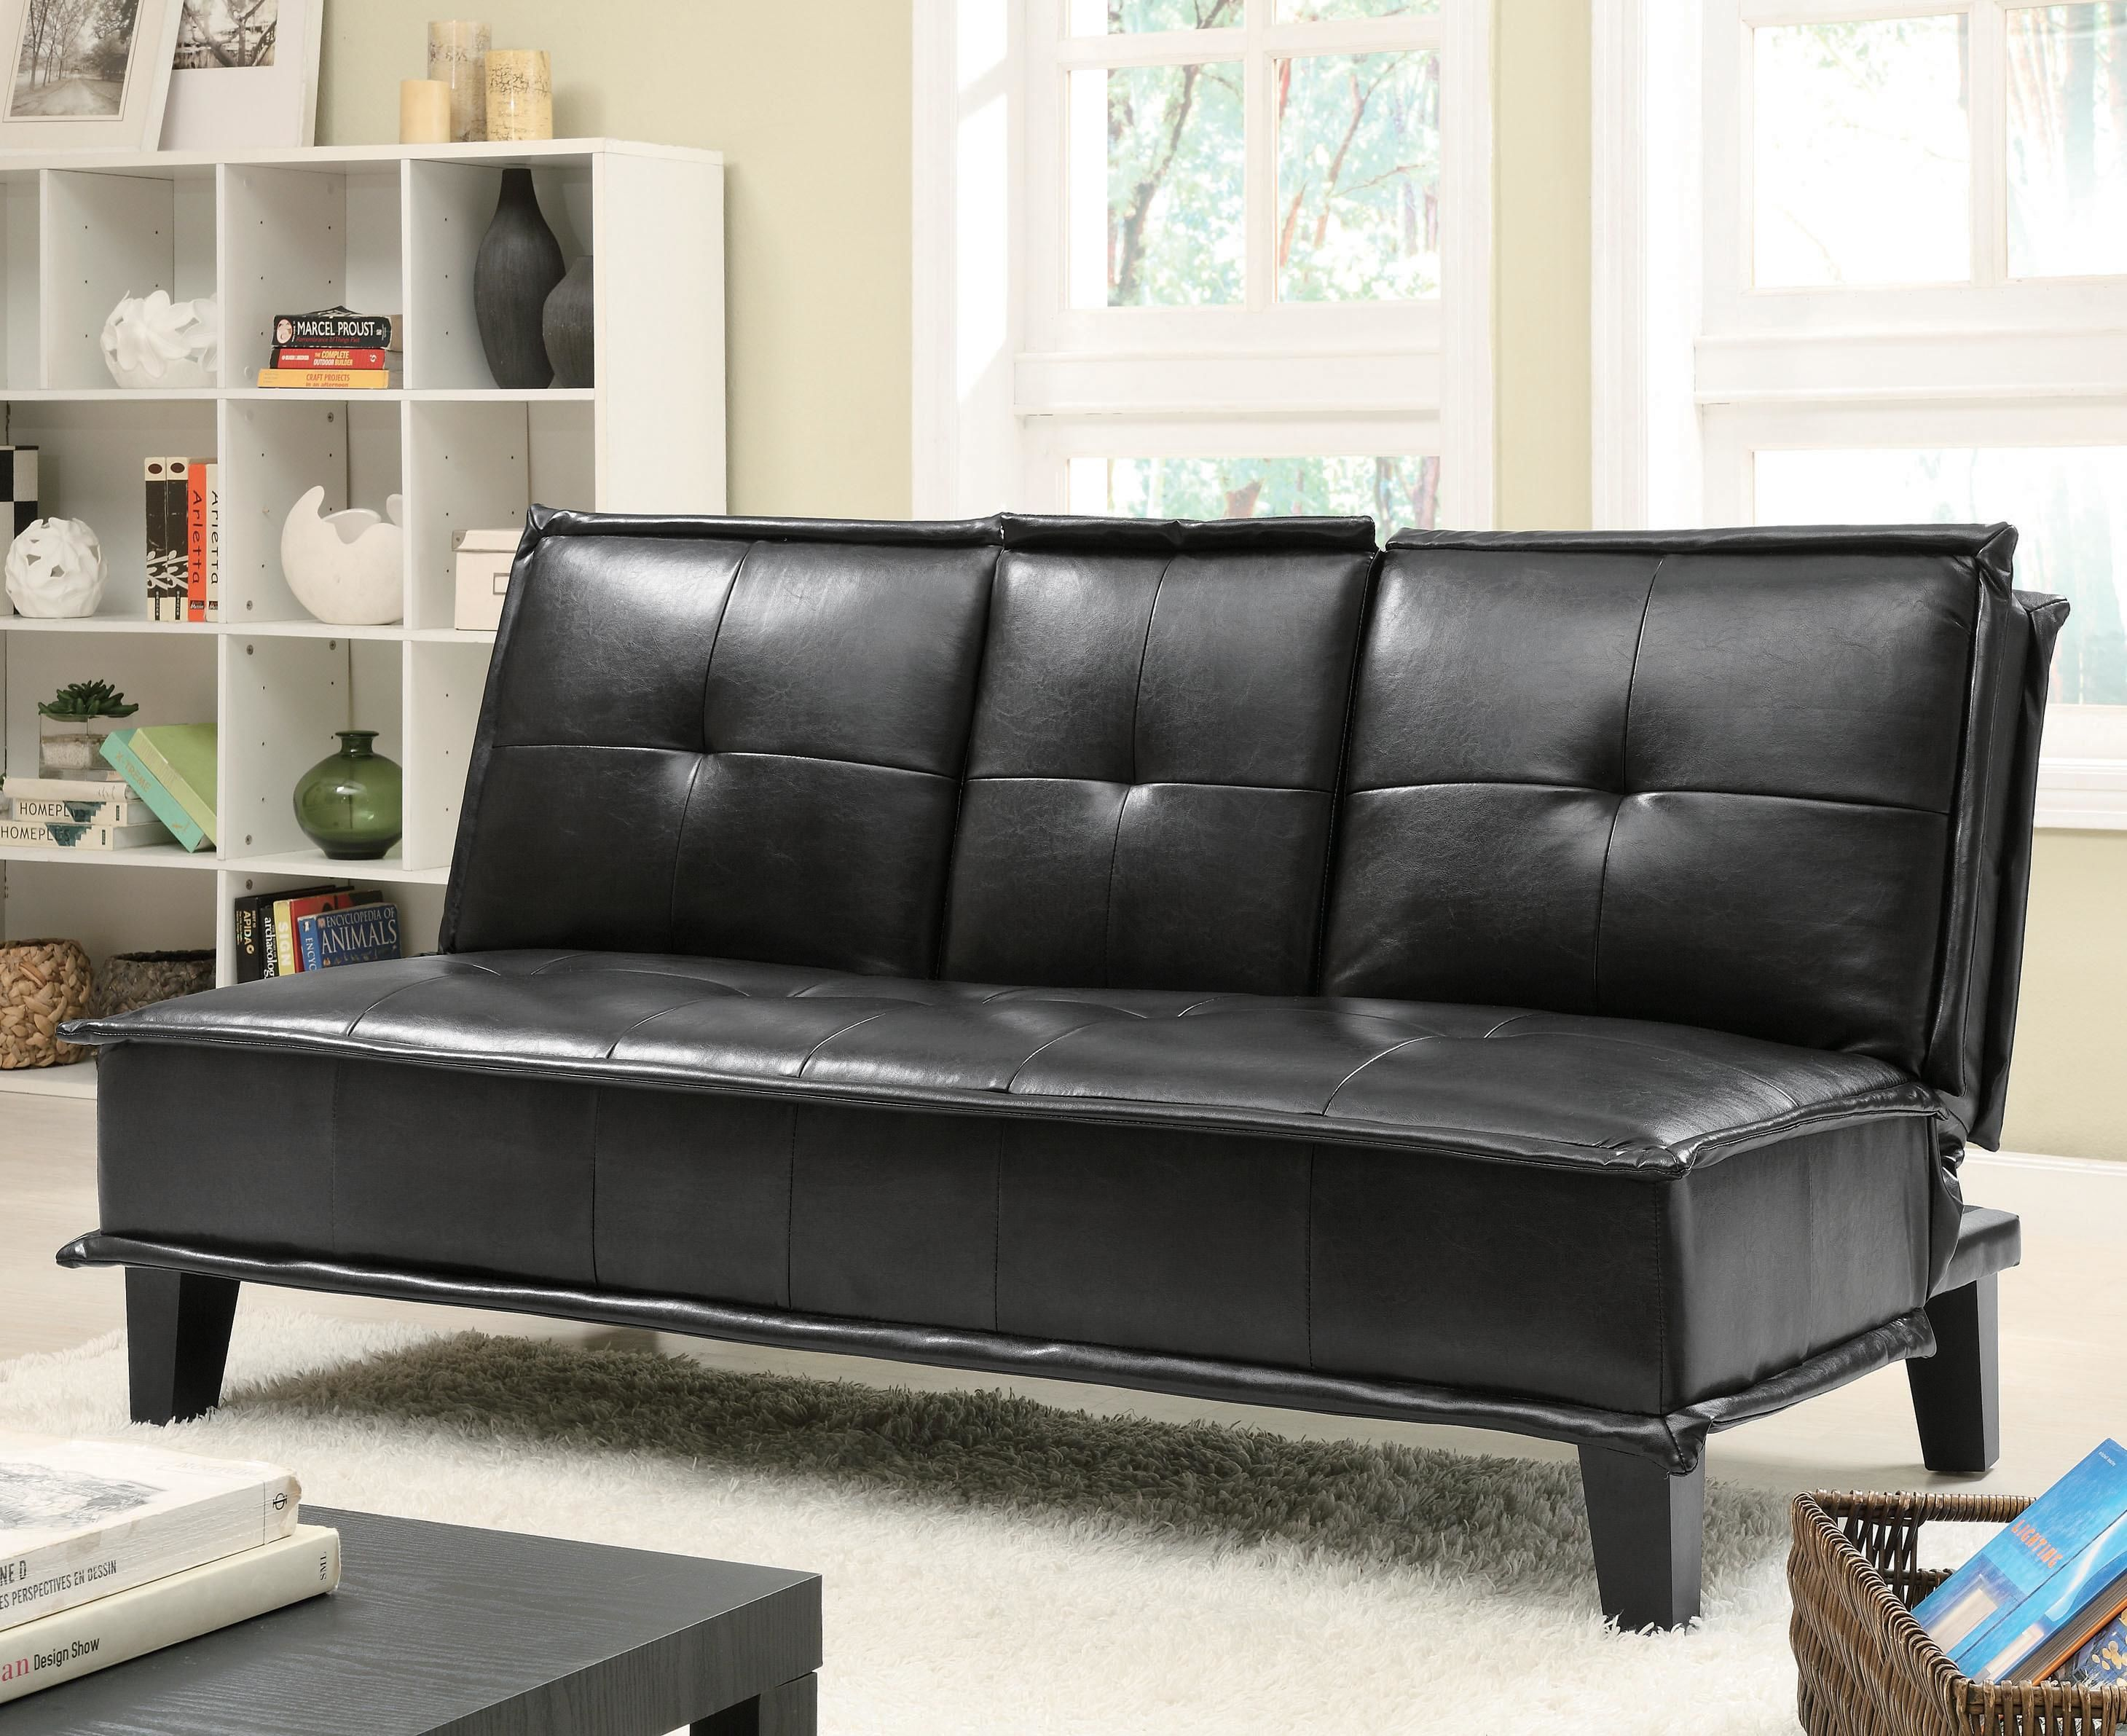 fantastic reclining sofa with drop down table model-Lovely Reclining sofa with Drop Down Table Decoration